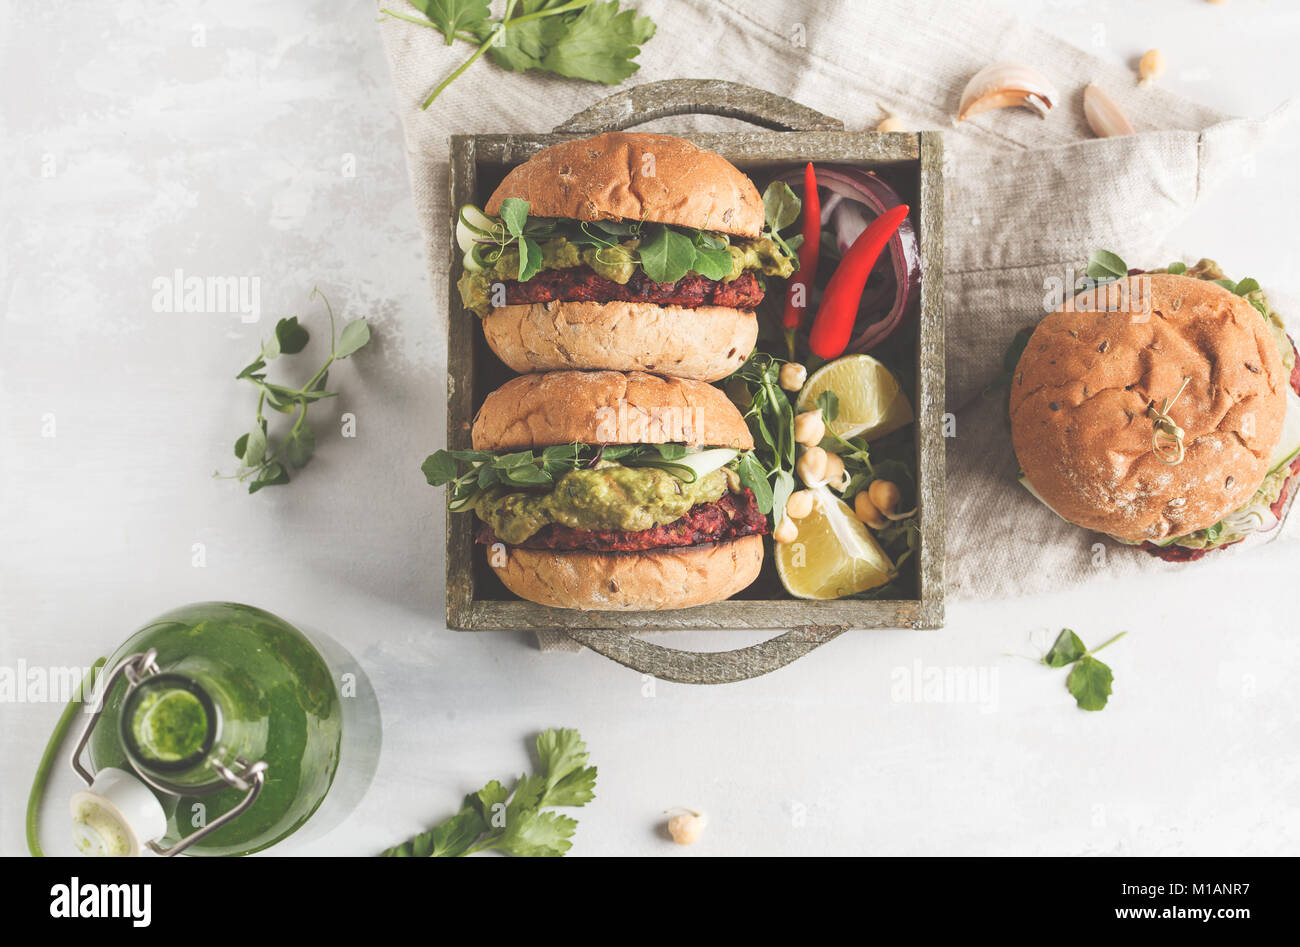 Vegan beet chickpea burgers with vegetables, guacamole and rye buns in wooden box. Healthy vegan food concept. - Stock Image